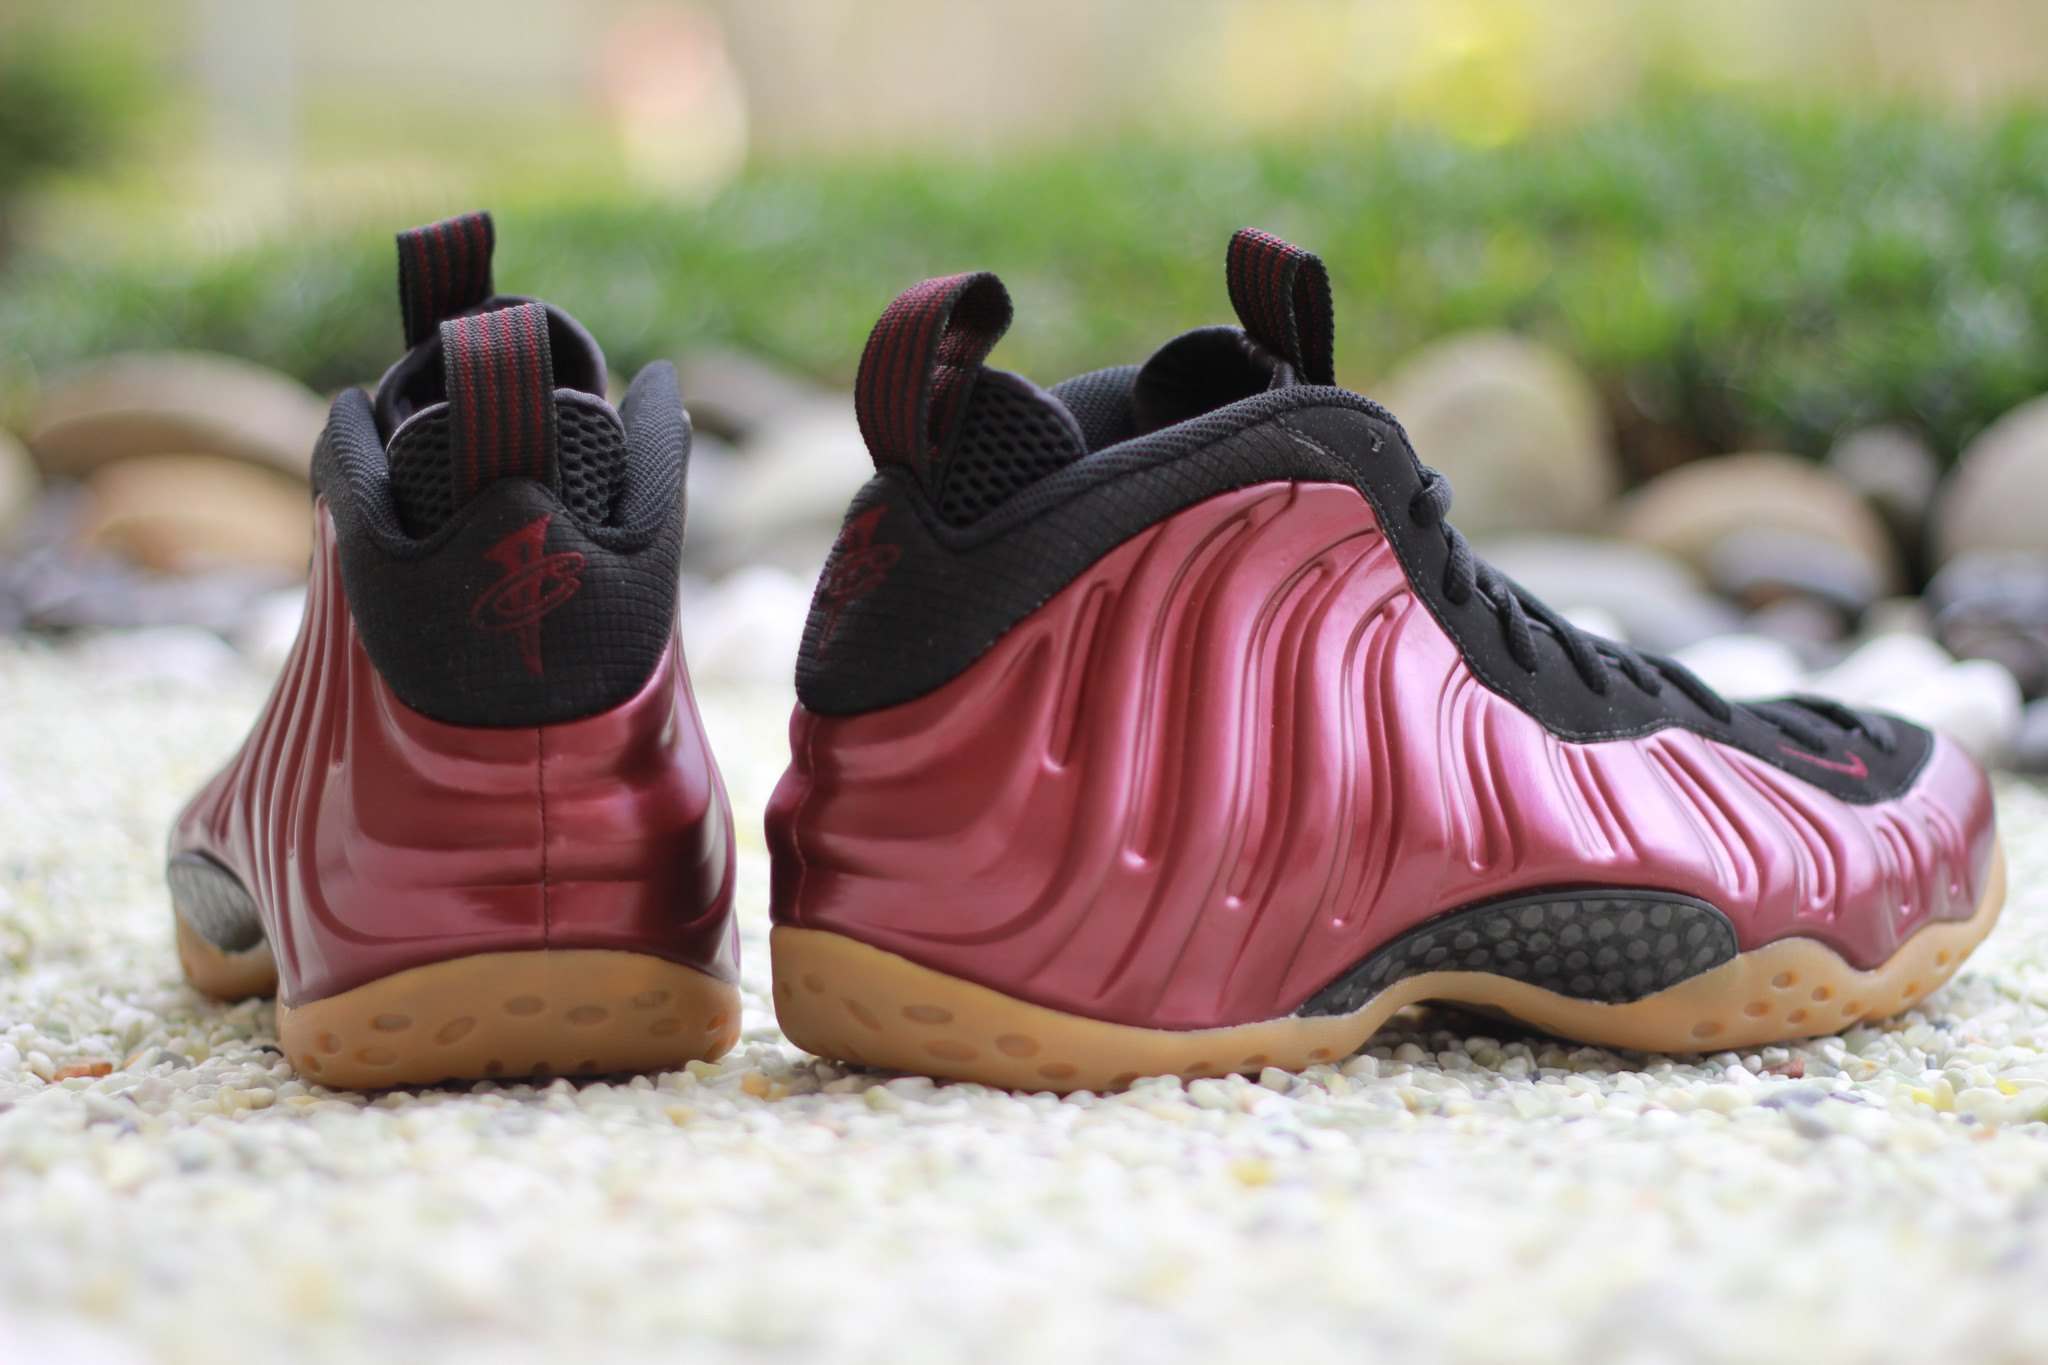 Maroon Nike Air Foamposite One Heel 314996-601